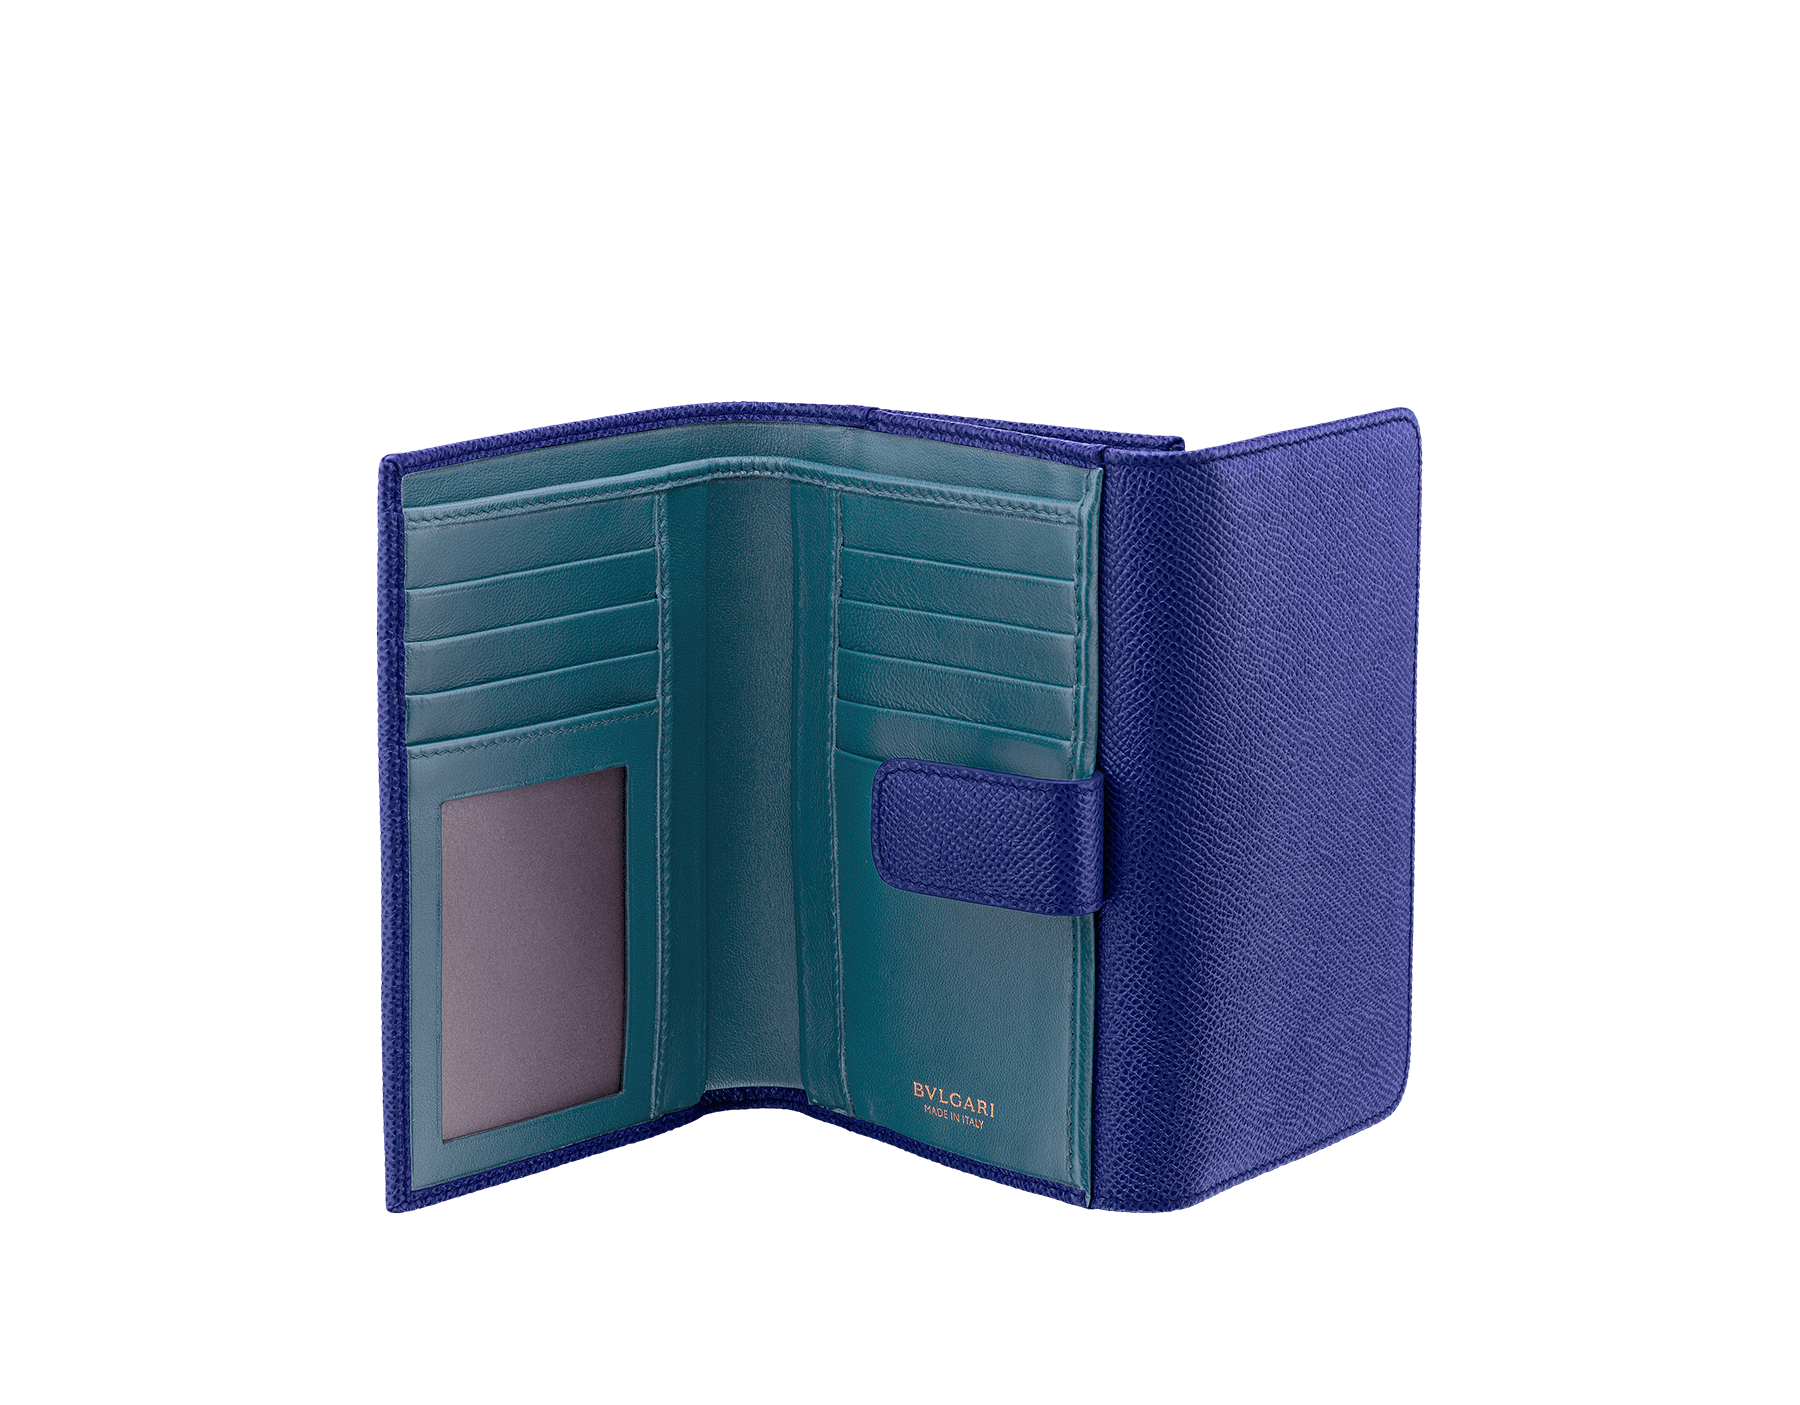 Compact pochette in royal sapphire bright grain calf leather, teal topaz nappa and plum amethyst nappa lining. Brass light gold plated hardware and iconic BVLGARI BVLGARI closure clip. Ten credit card slots, one ID compartment, one bill compartment, one coin pocket with flap, five addictional compartments. Also available in other colours. 14,5 x 10 cm. - 5.7 x 3.9'' 579-COMPPOCHETTE image 2